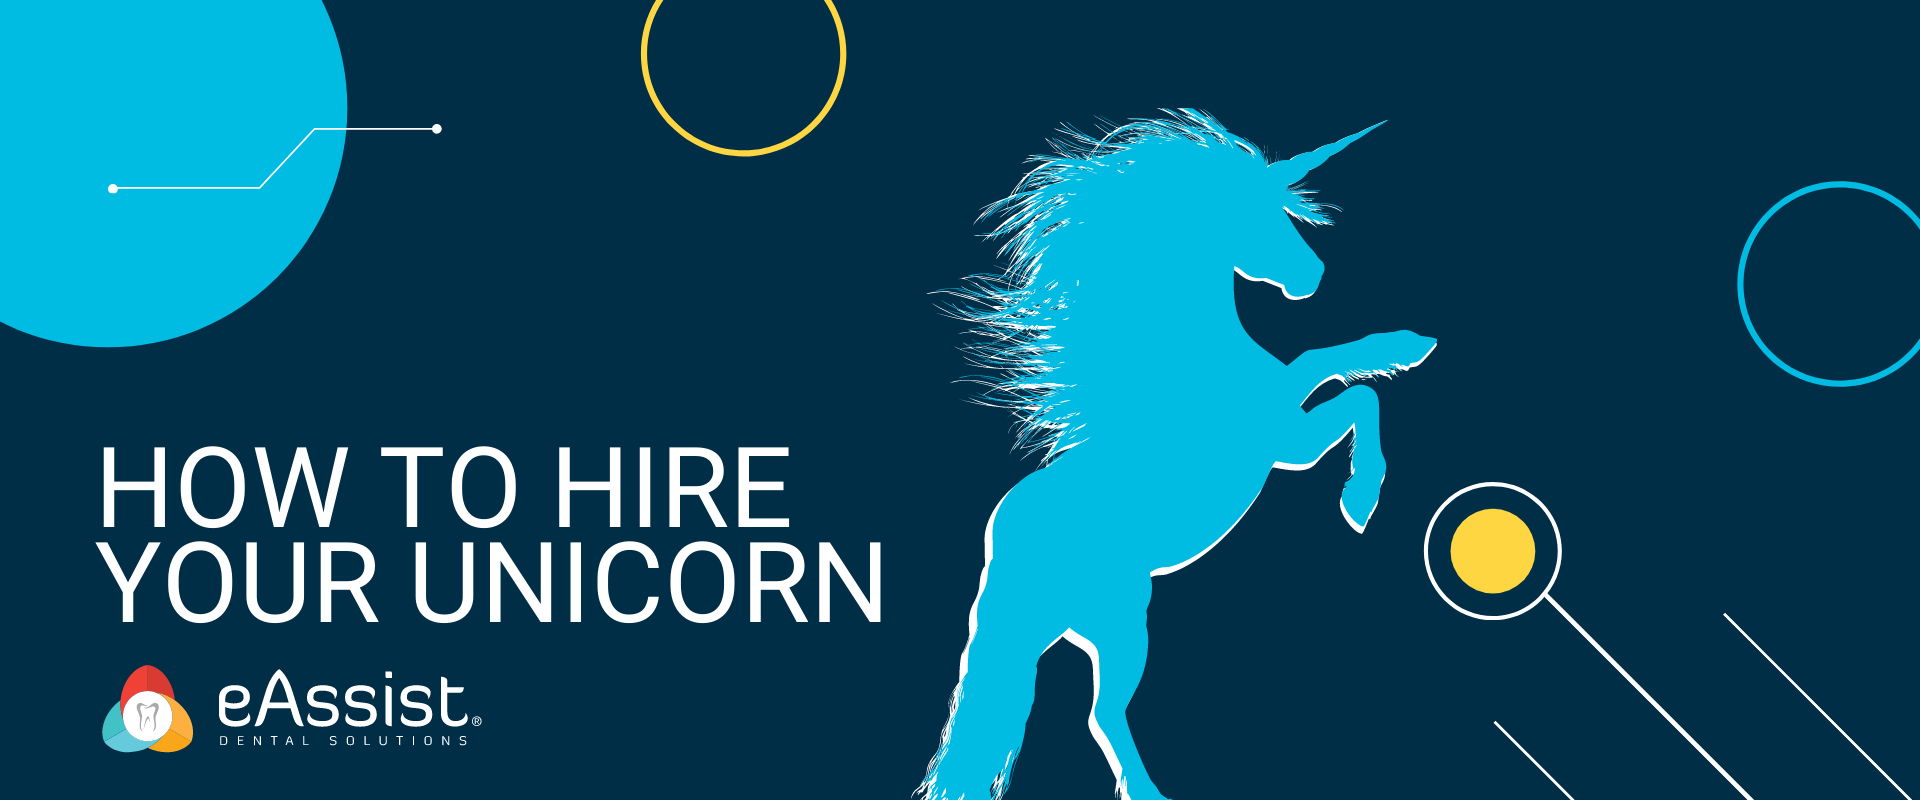 How to hire your unicorn